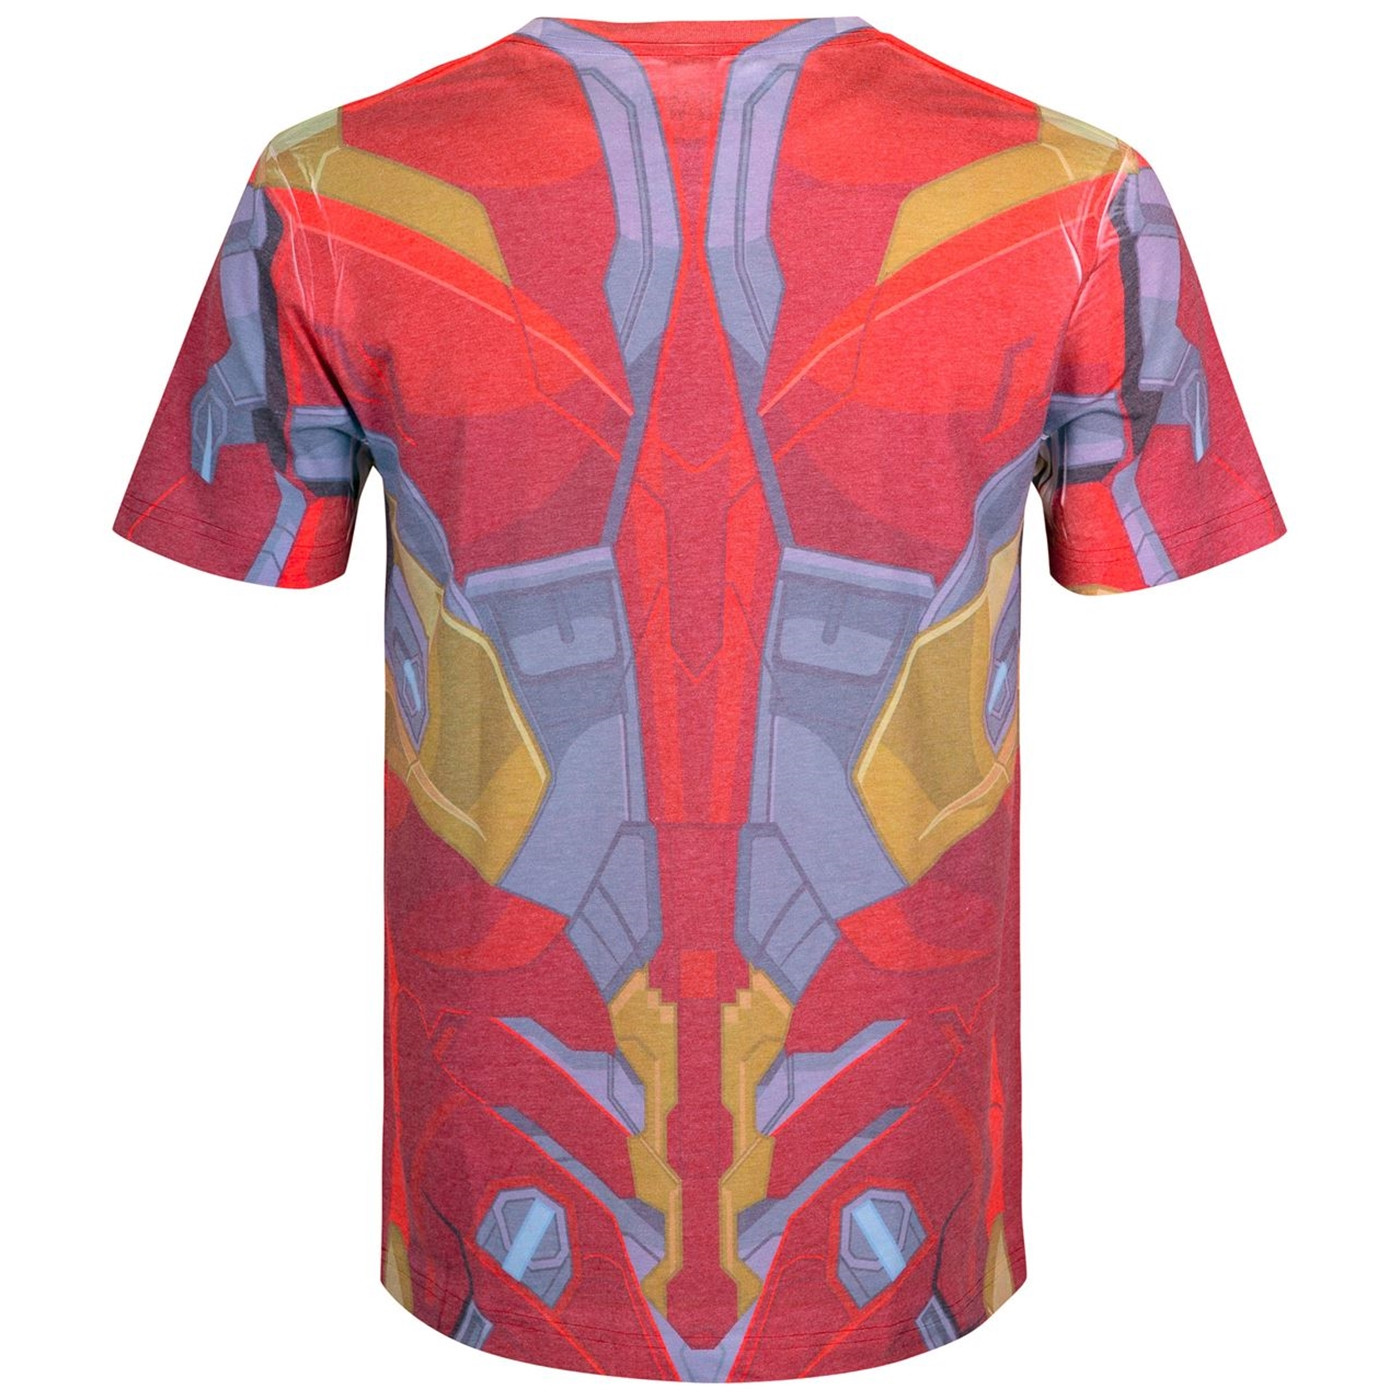 Iron Man Costume Sublimated Men's T-Shirt